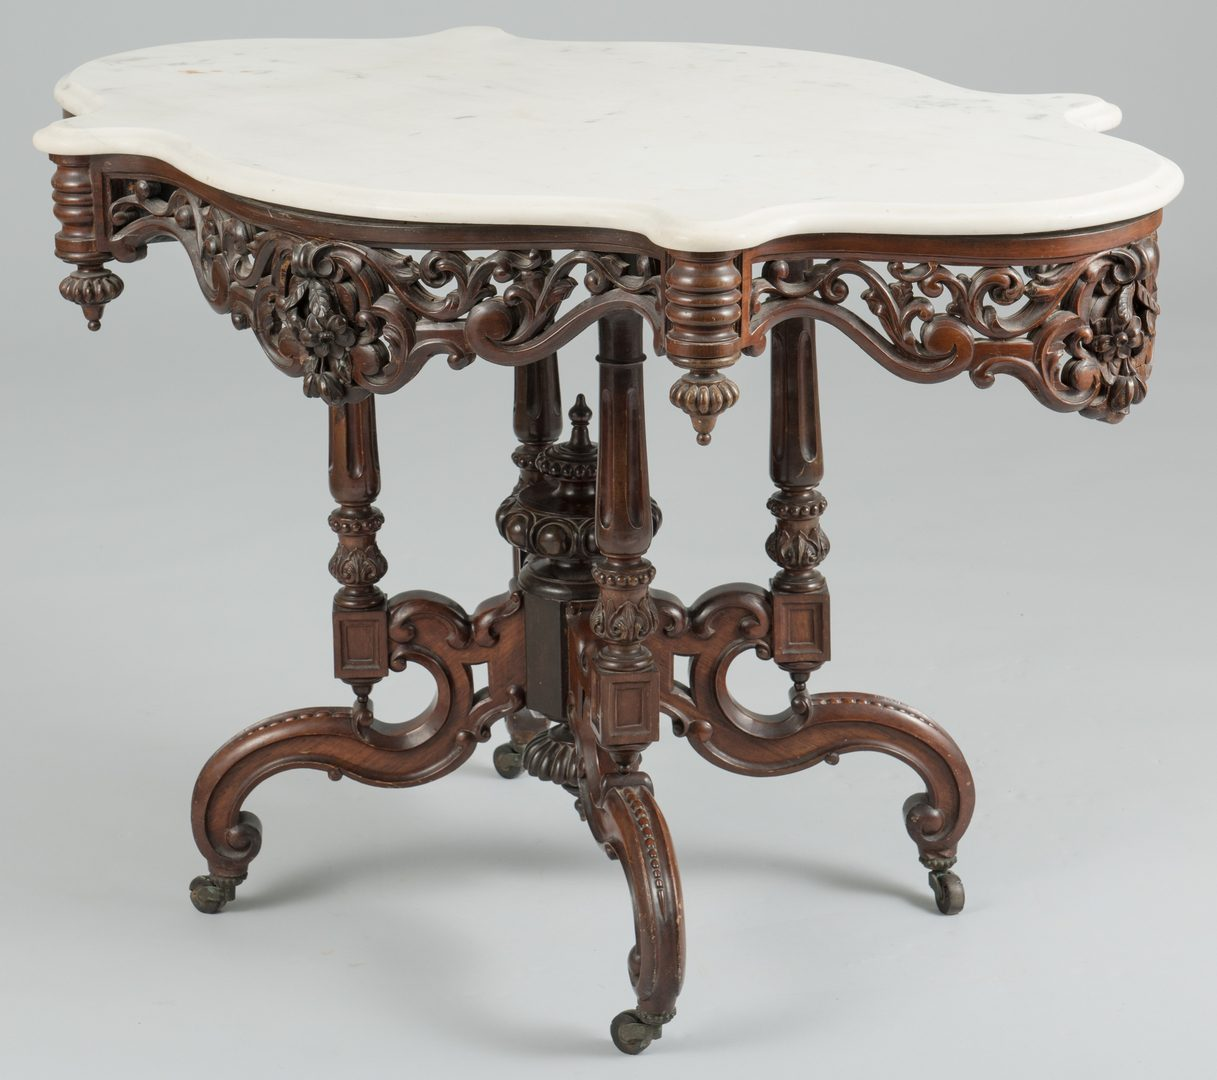 Lot 485: Marble Top Center Table att. Meeks